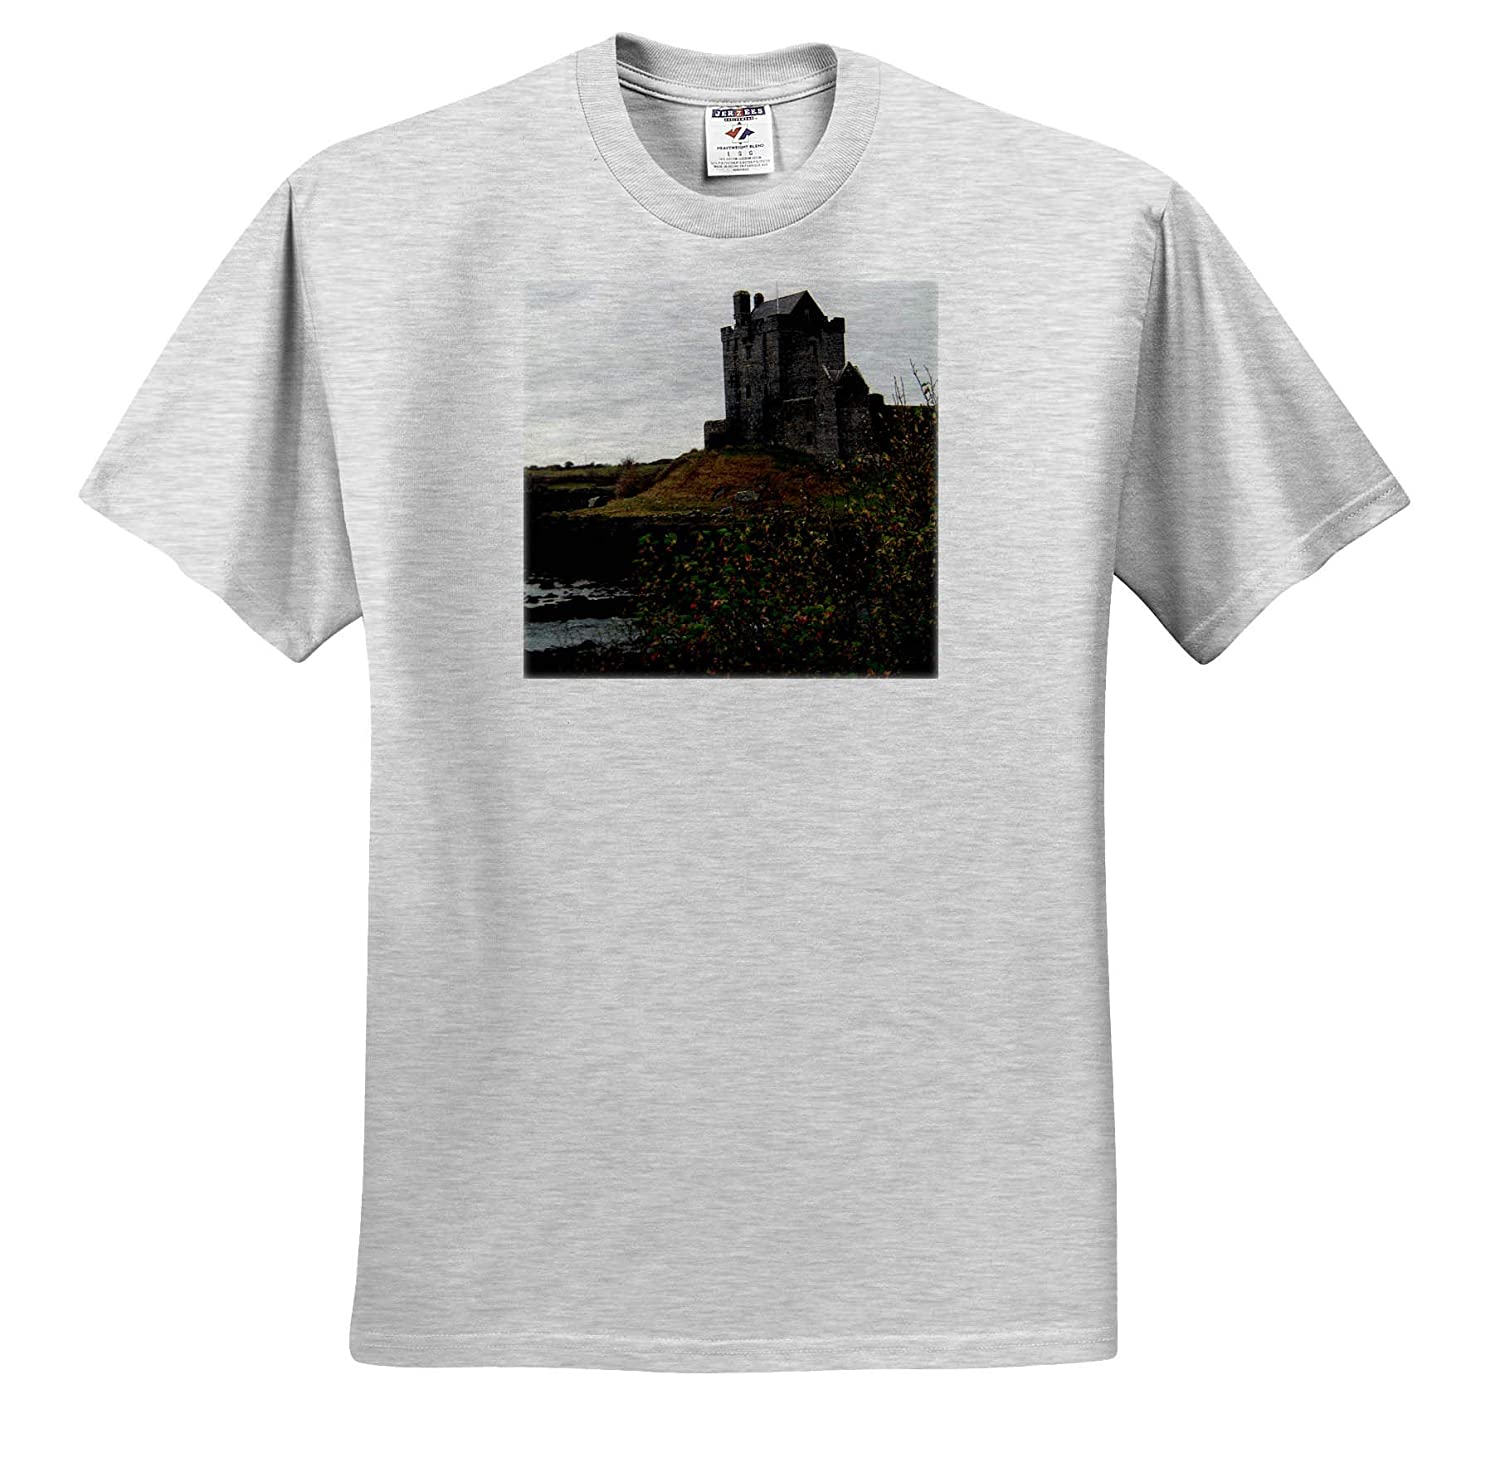 Castle Scotland A Castle Off The Road in Scotland on a Hill T-Shirts 3dRose Jos Fauxtographee